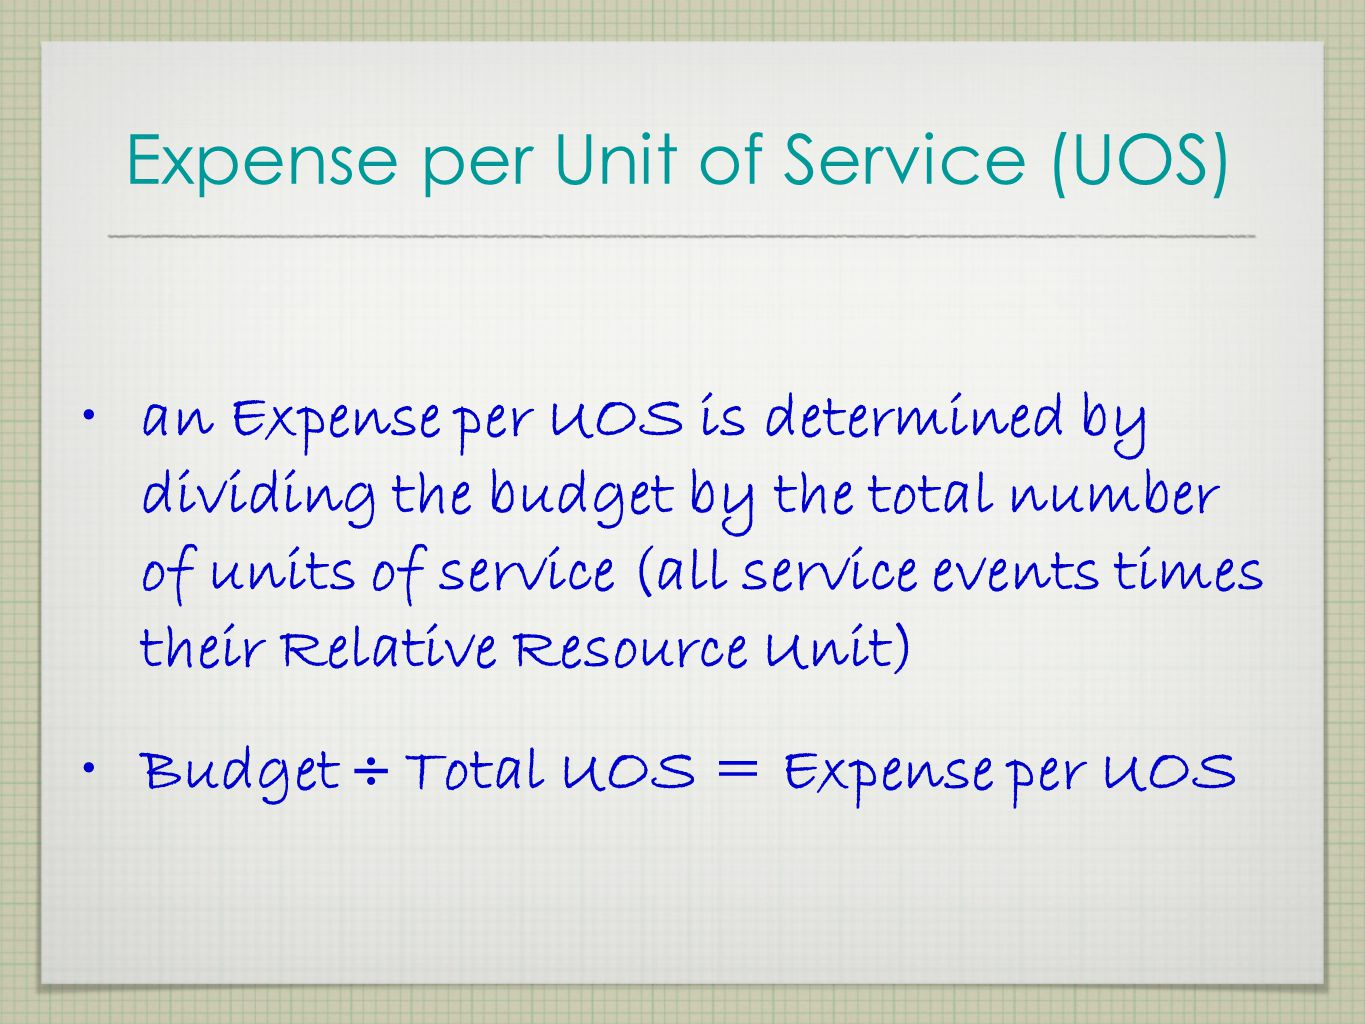 Units of Service (UOS) a Service Event (SE) times its Relative Resource Unit (RRU) equals a unit of service (UOS) SE x RRU = UOS 50 - SE #1 x 2.50 = 1